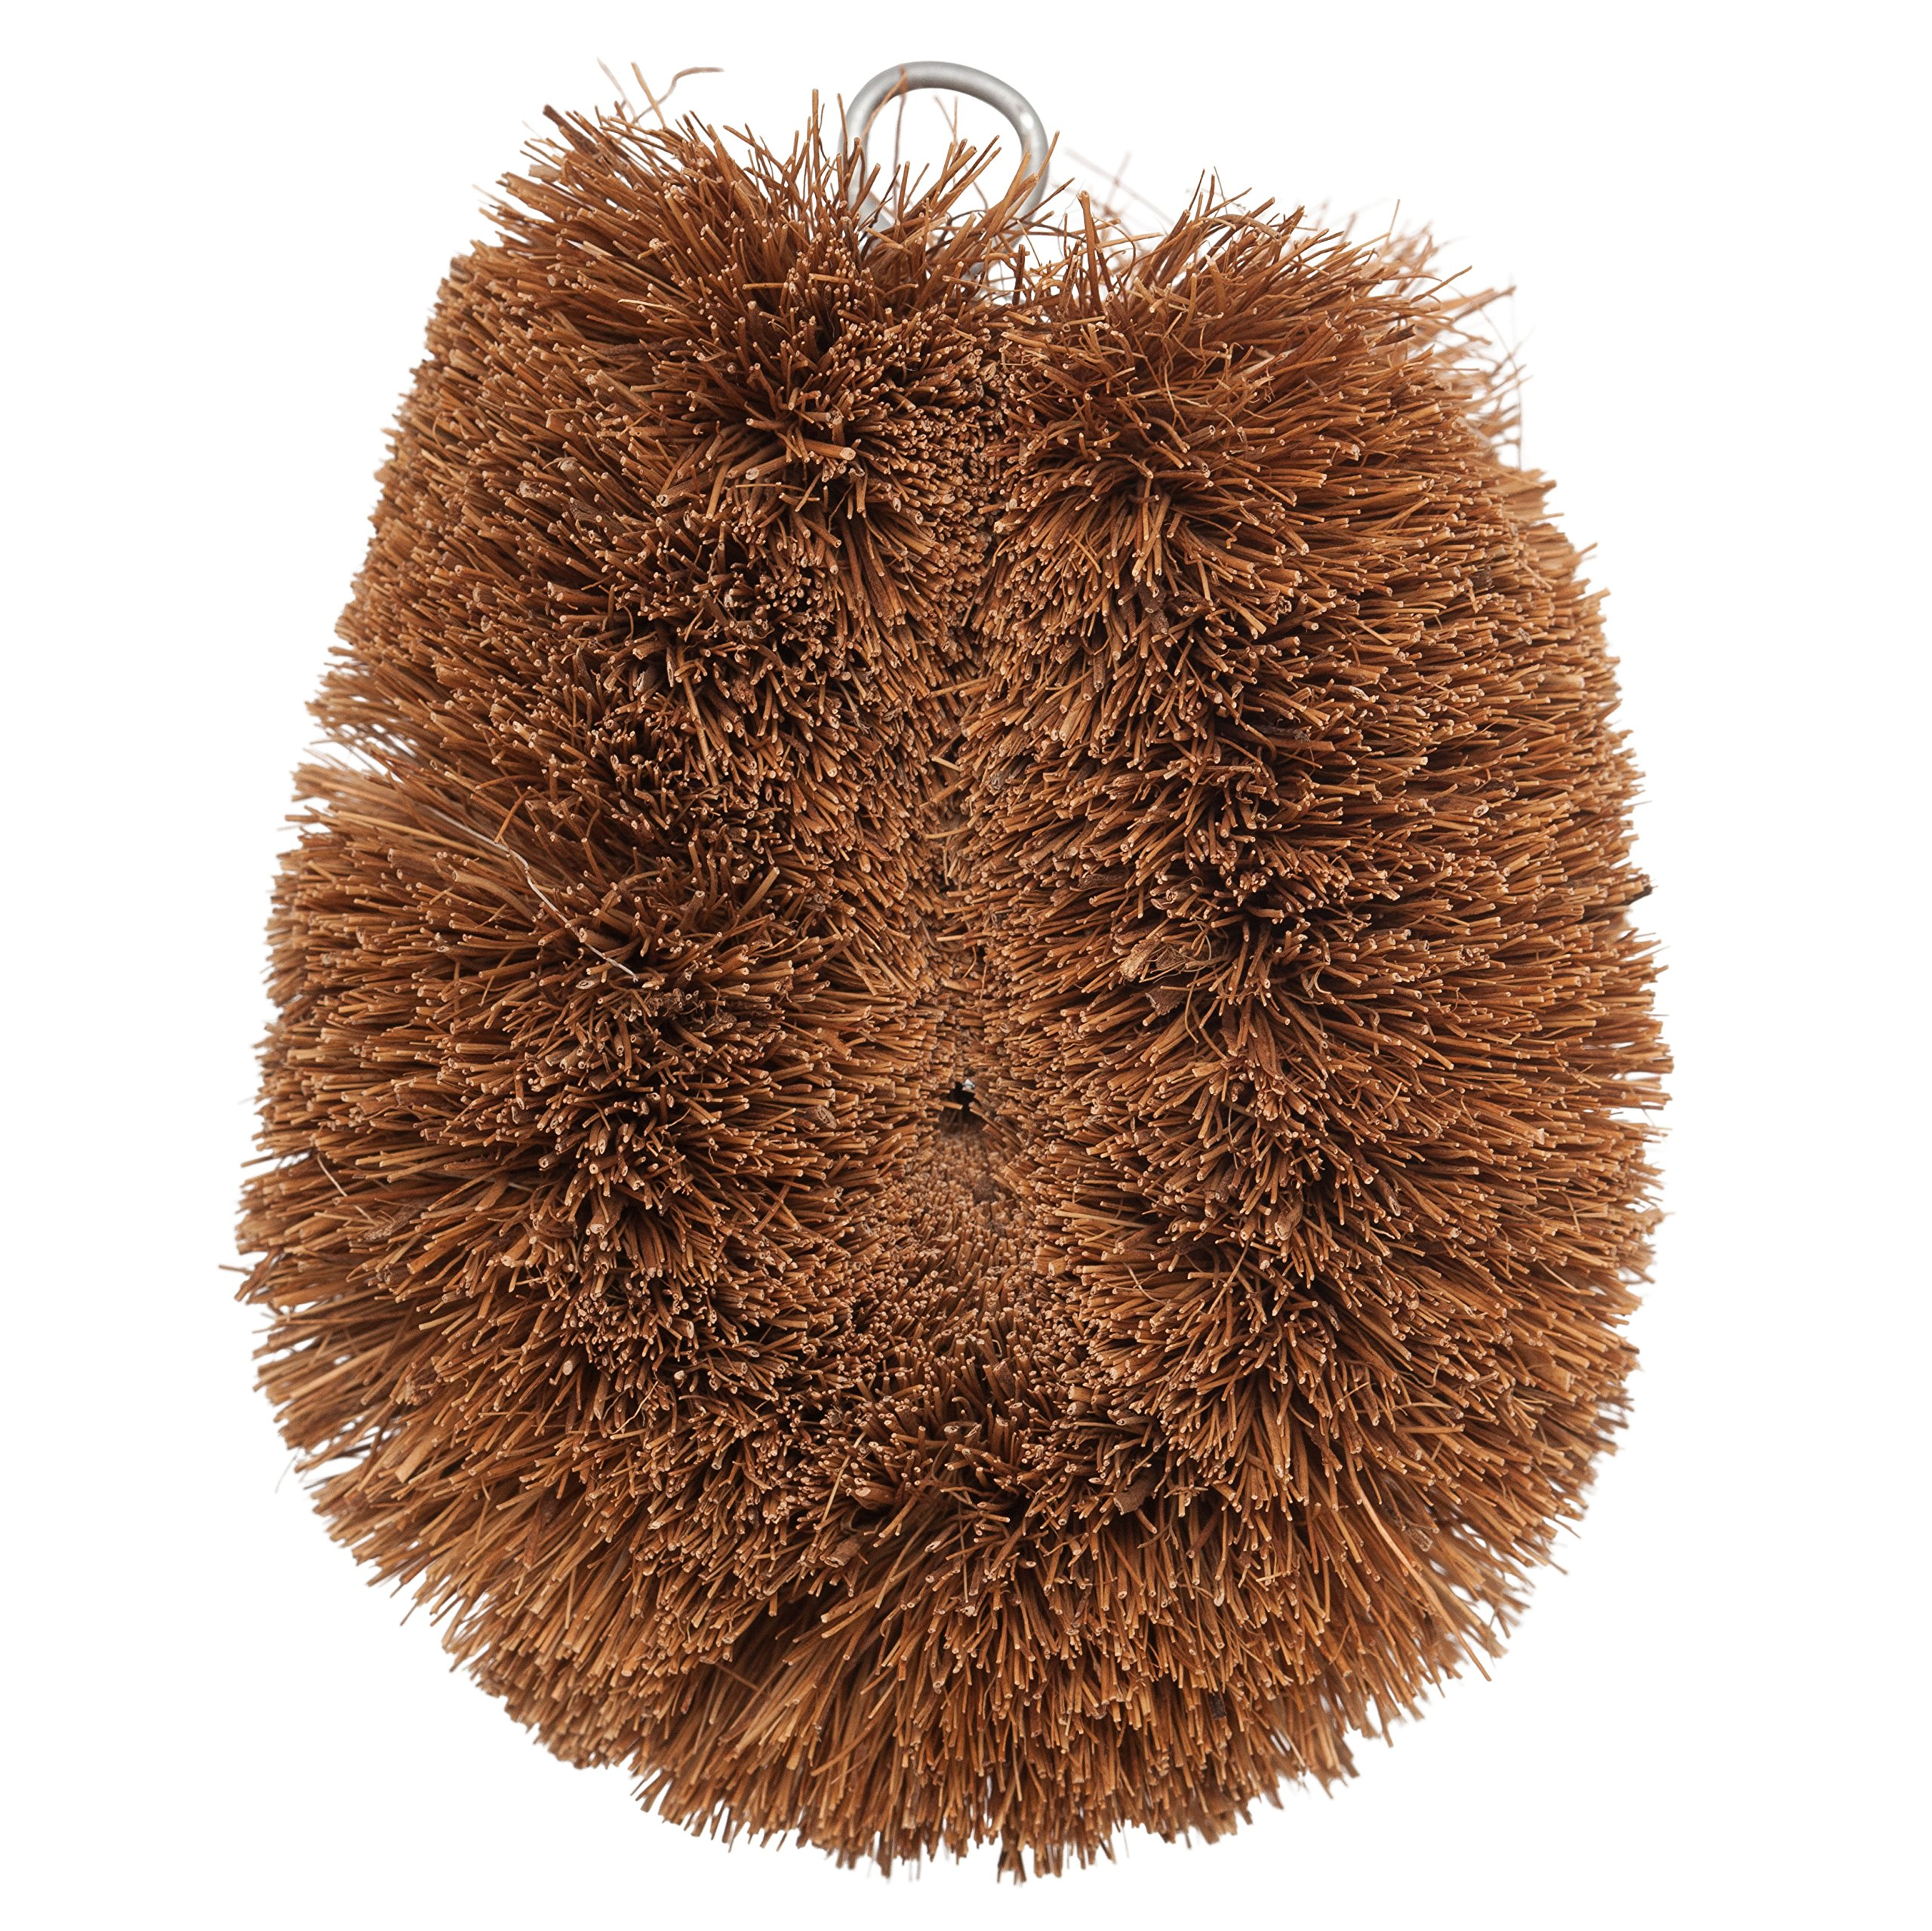 Redecker Vegetable Brush, Coconut Fiber, Set of 2, 4 x 3 inches, Natural Bristles Effectively Clean Soft and Tough-Skinned Fruits and Veggies, Wire Hanging Loop for Storage by REDECKER